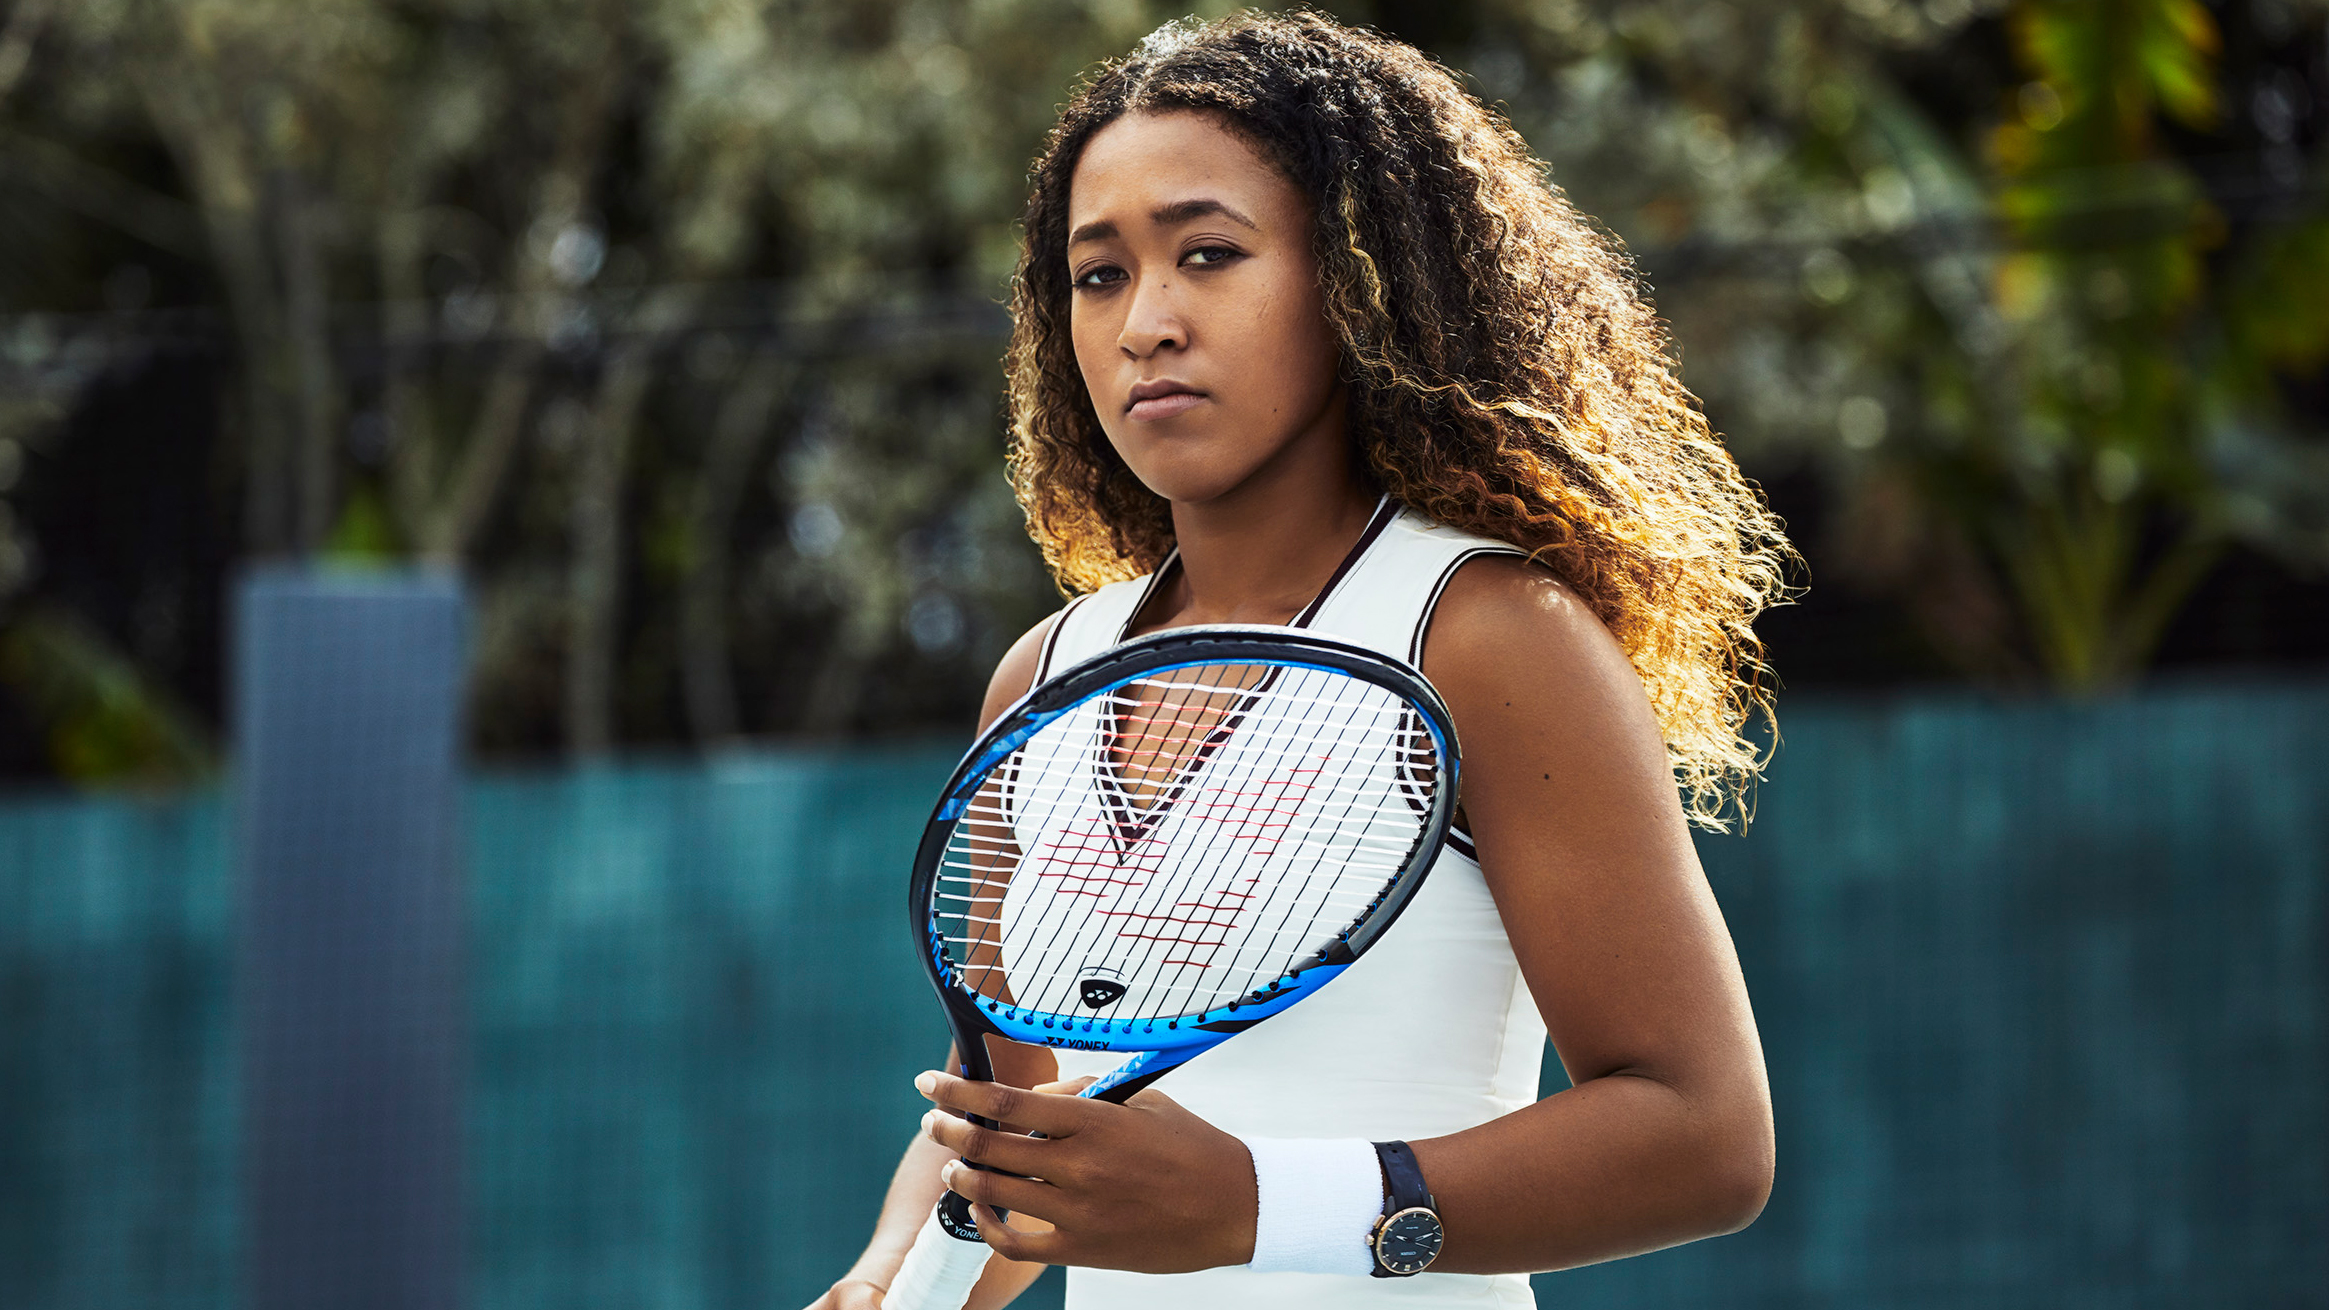 The One And Only Naomi Osaka The Undefeated